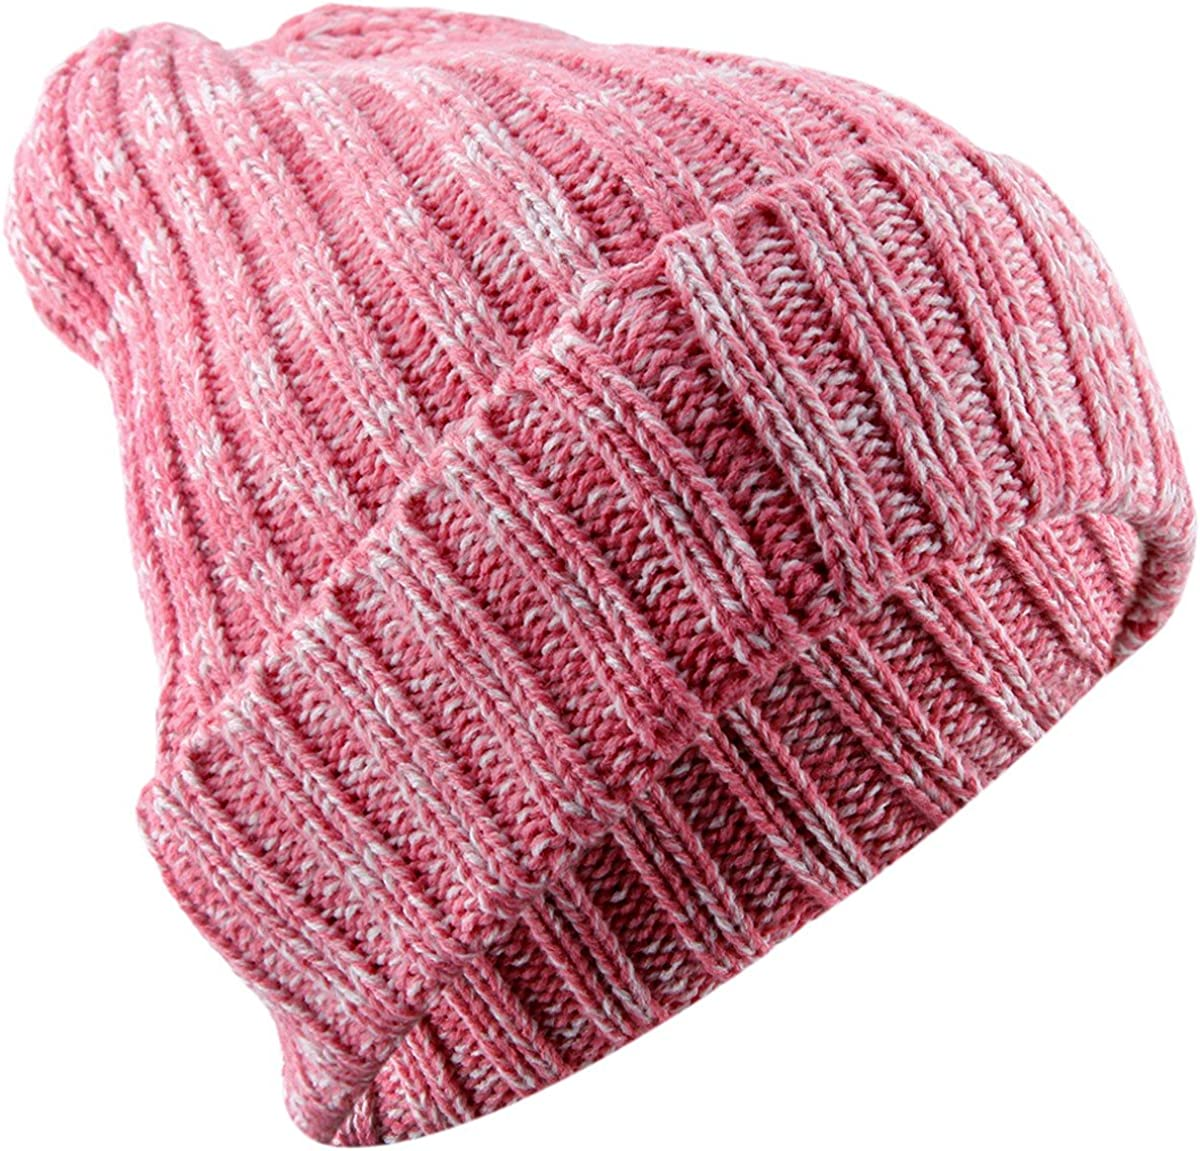 squaregarden Beanie Hats for Men Women,Winter Warm Baggy Ski Hat Knit Slouchy Cap